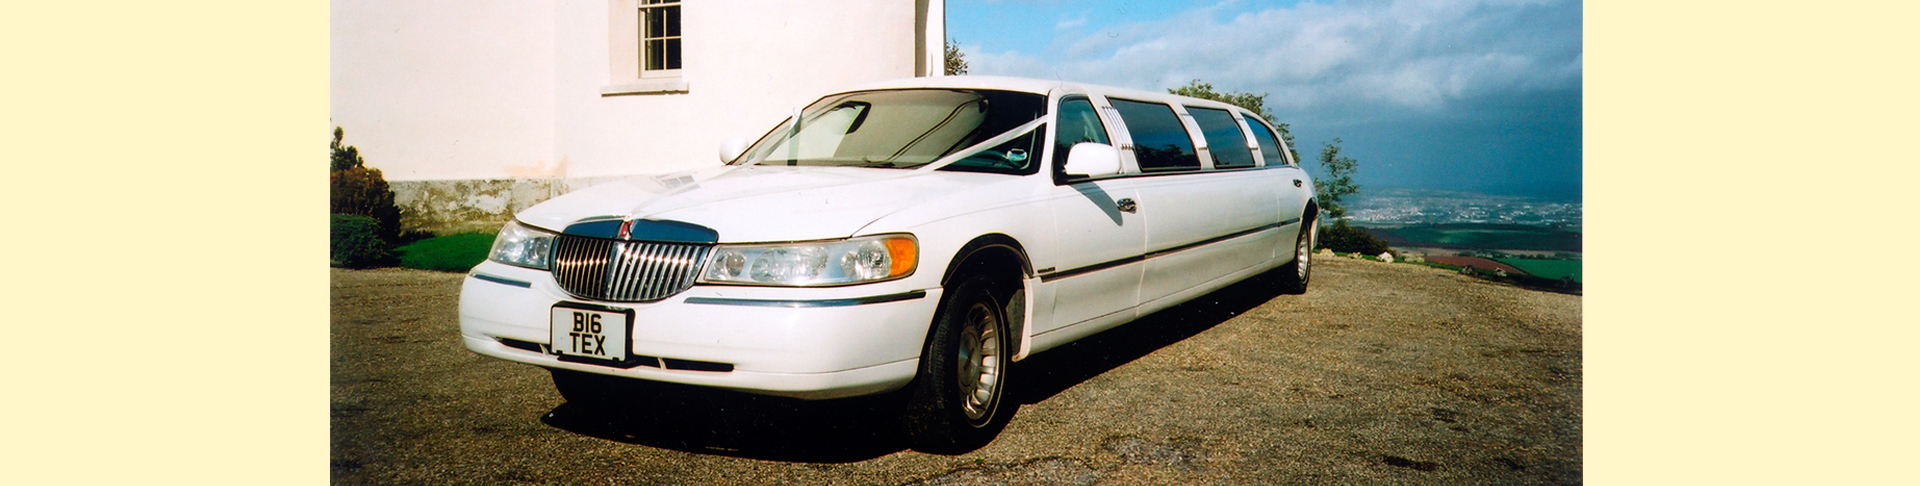 limo-exeter